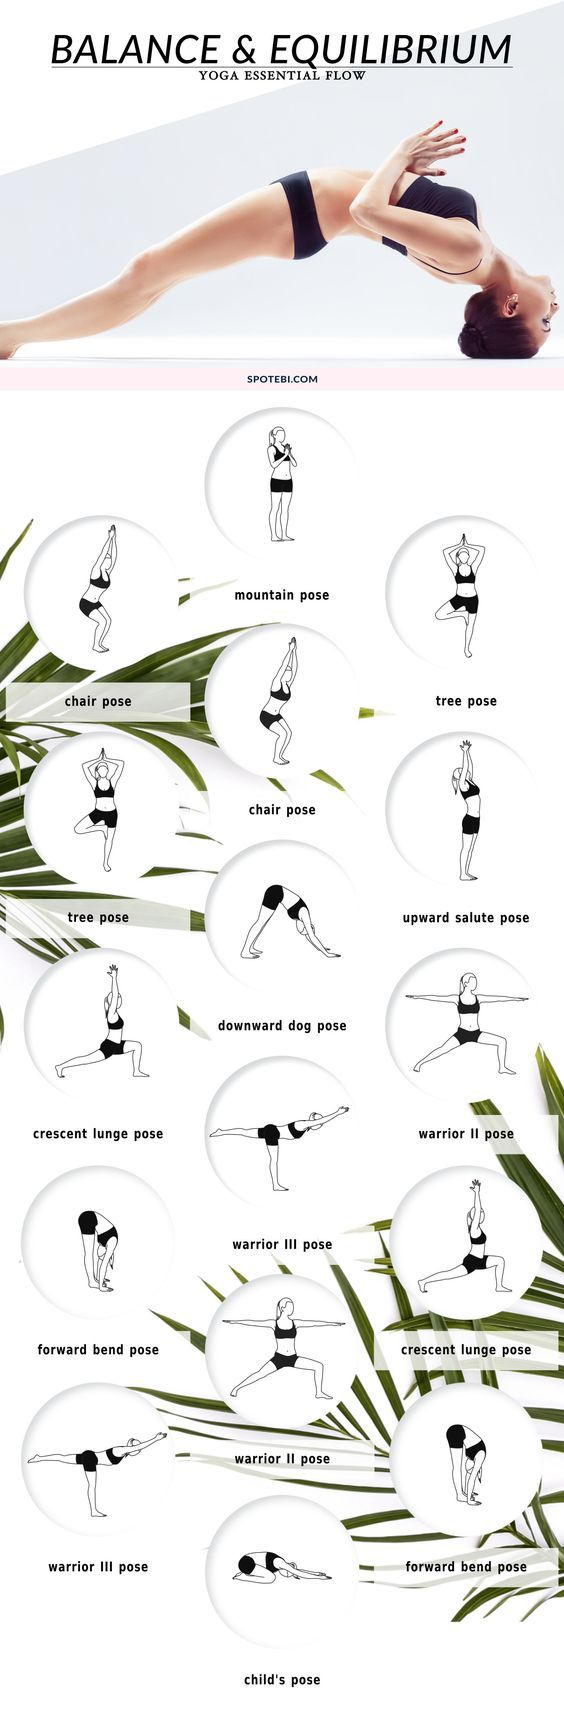 Boost balance and equilibrium, and reduce your risk of fall and injury with this 8-minute yoga flow. Repeat this sequence 2 or 3 times a week to improve muscle tone, flexibility, and reduce stress and anxiety. http://www.spotebi.com/yoga-sequences/balance-equilibrium/